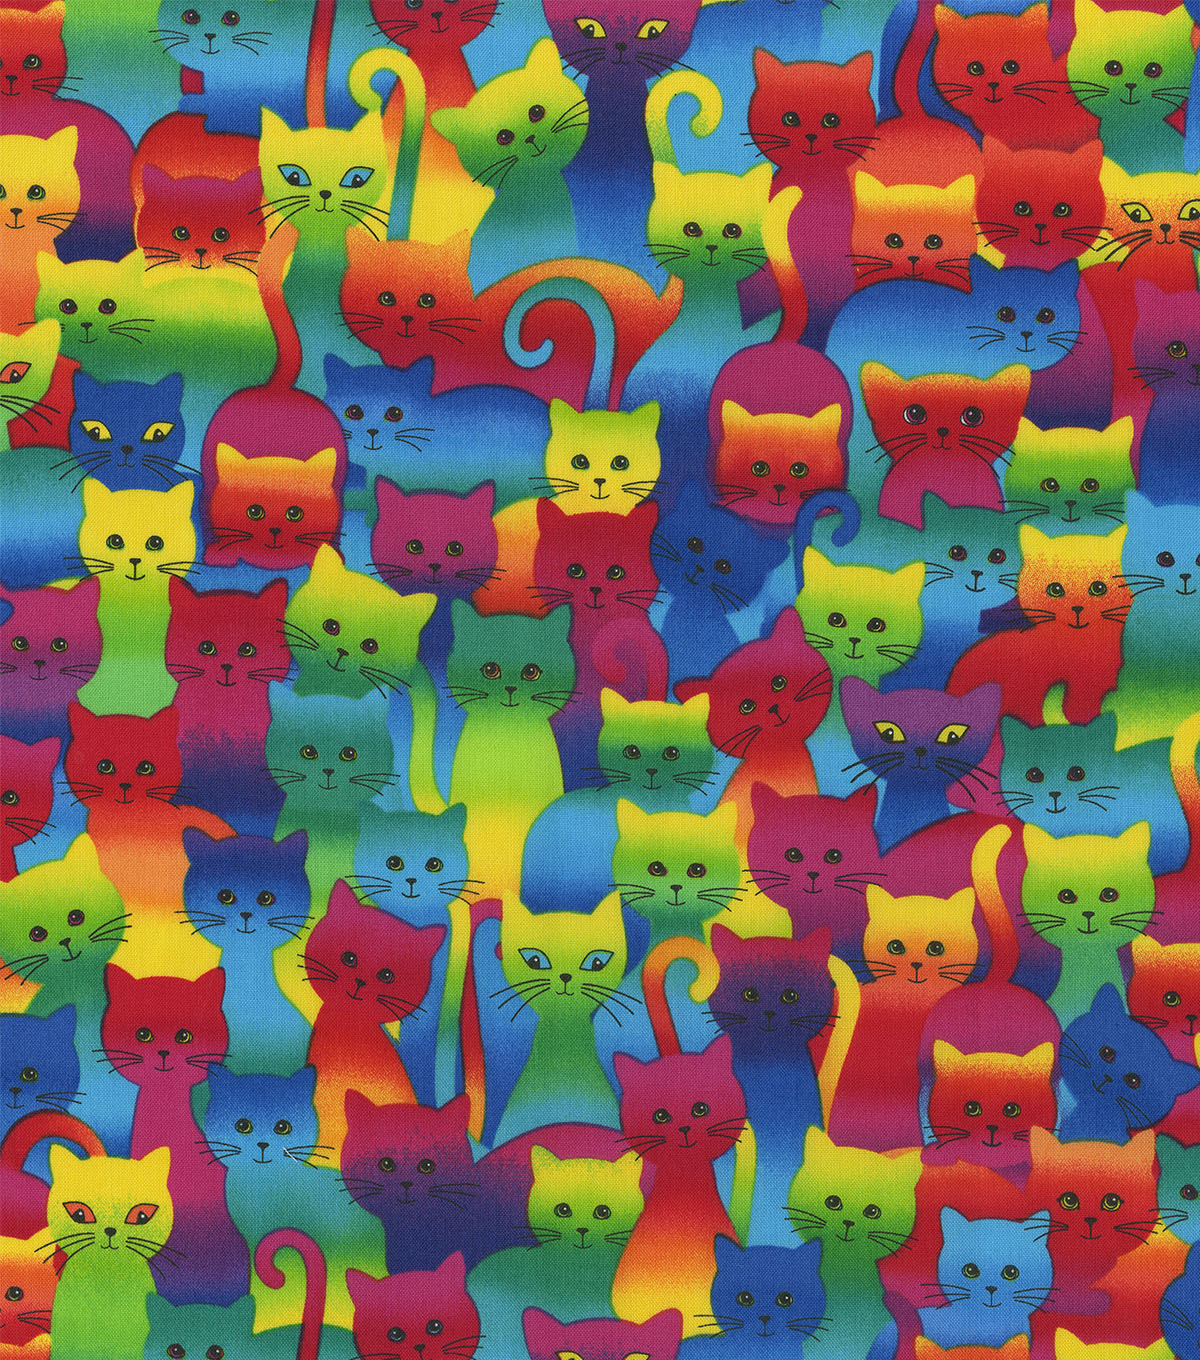 Novelty Cotton Fabric -Tie Dye Packed Cats